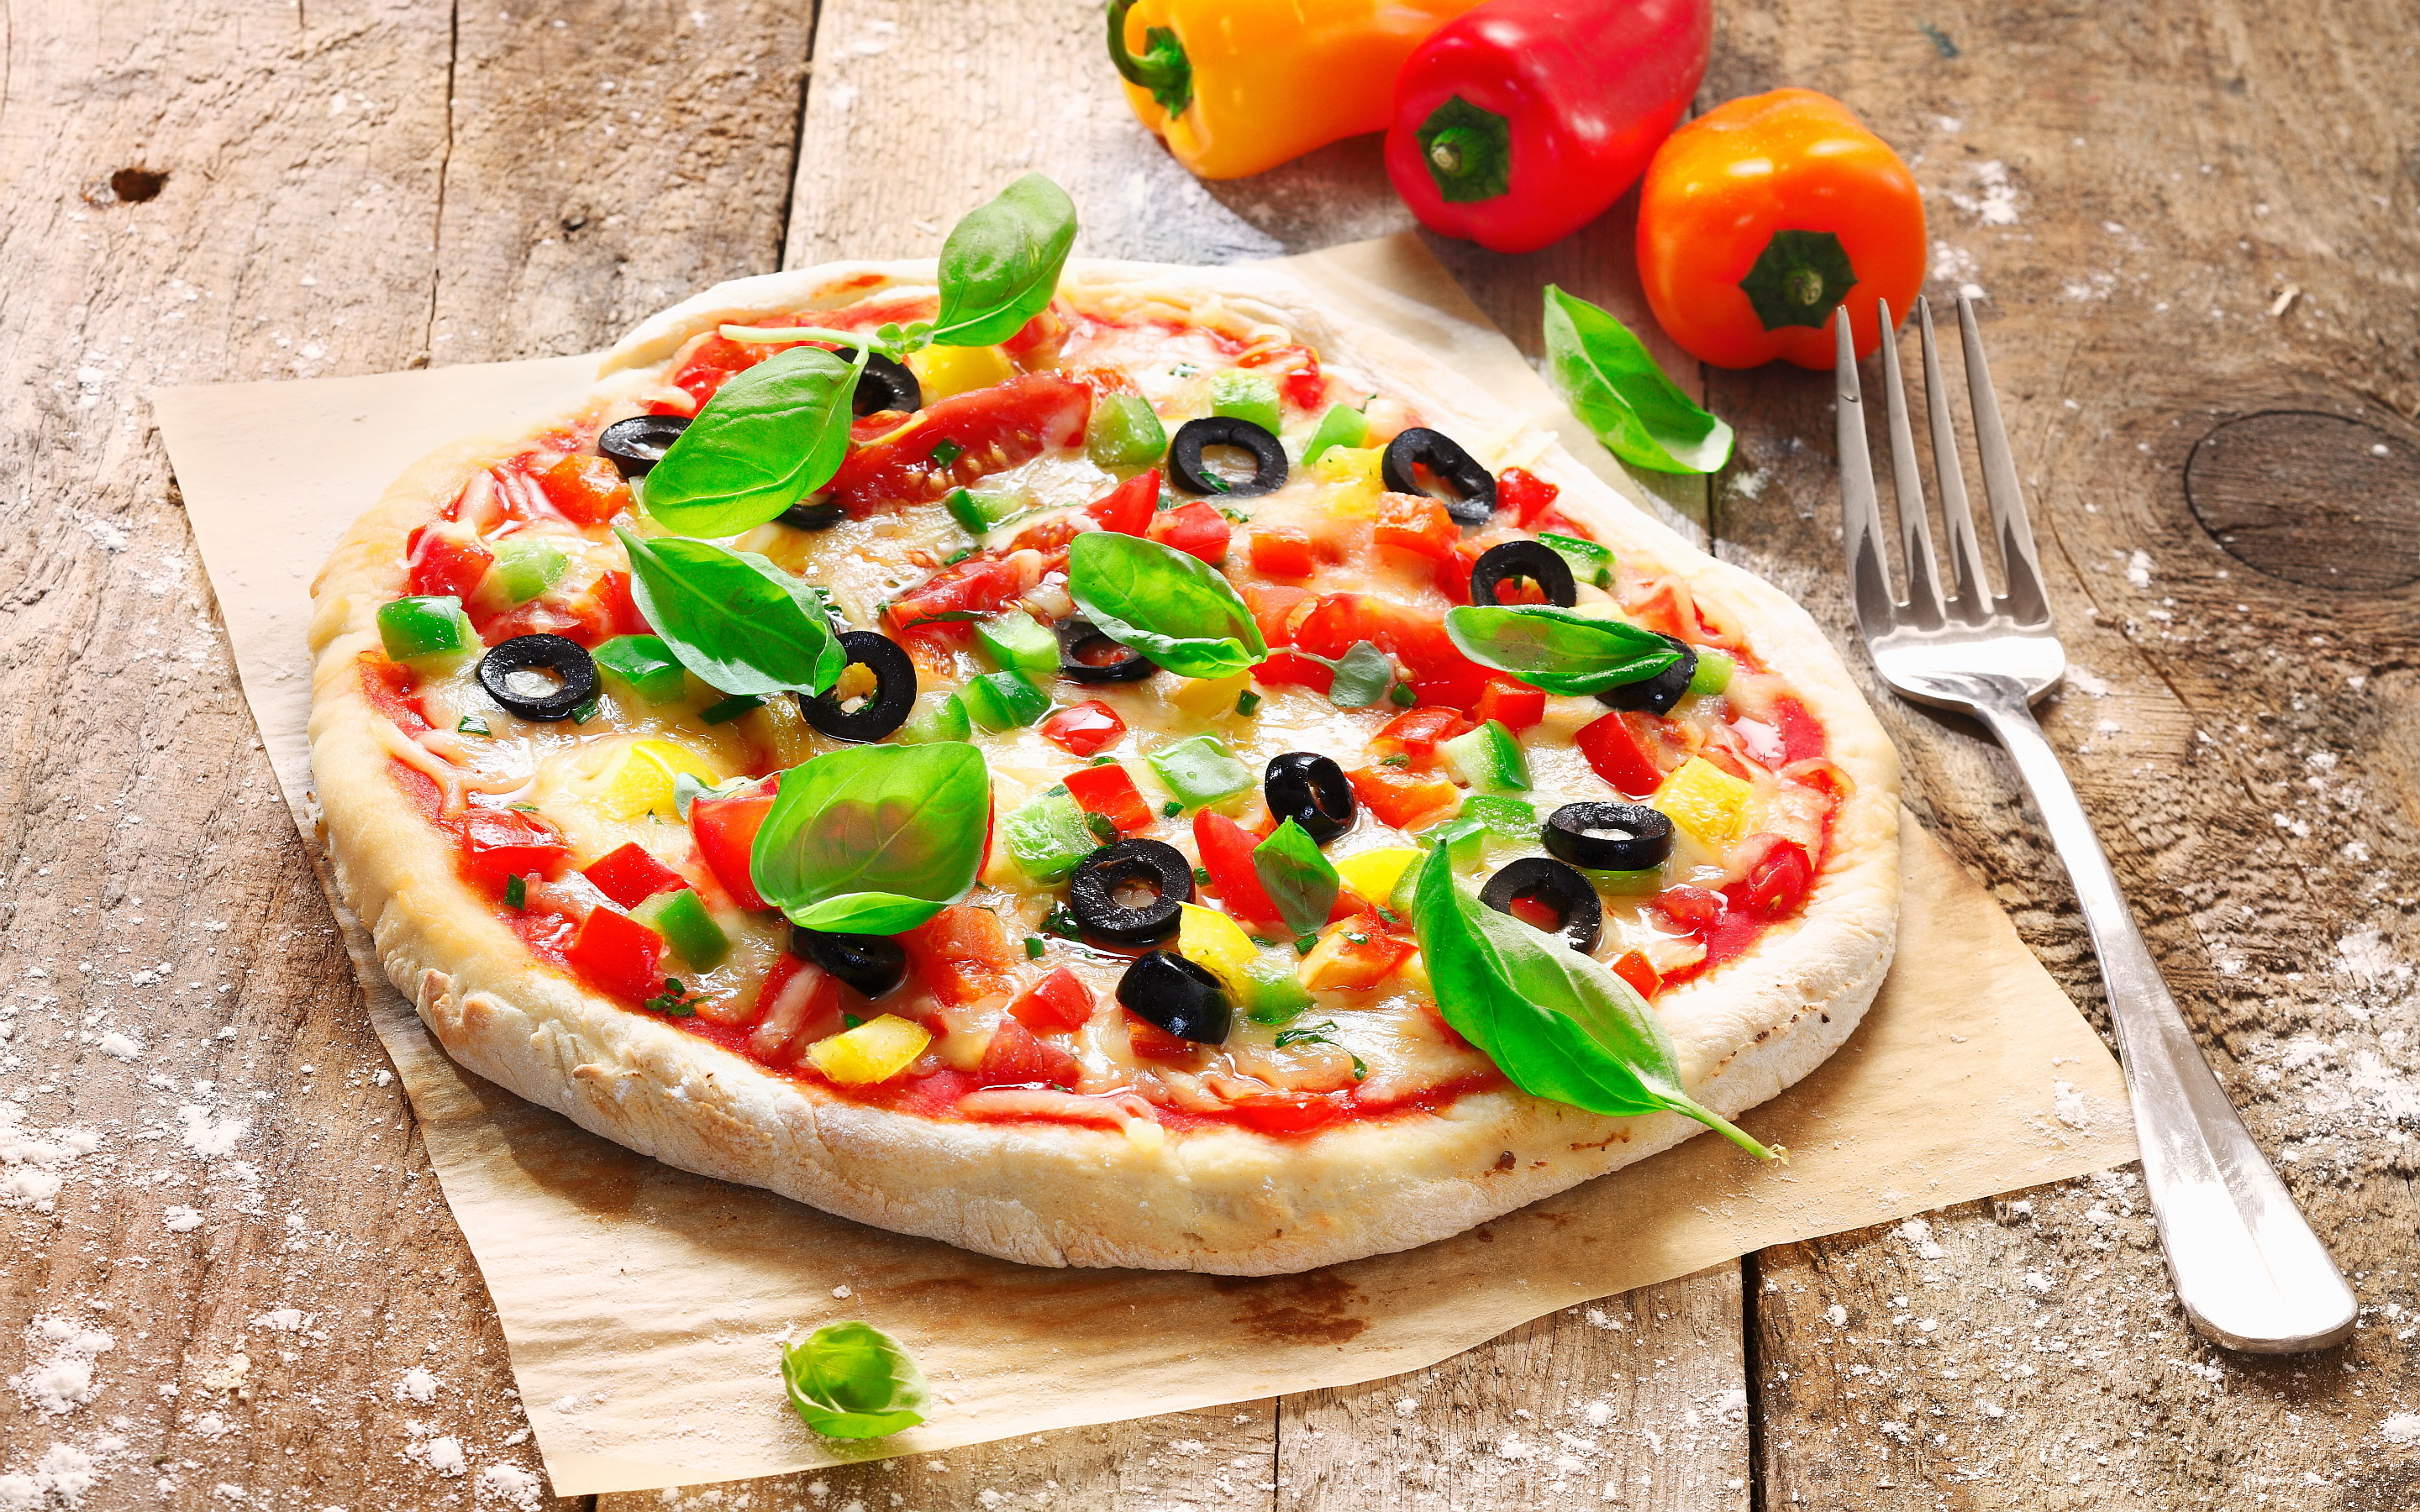 pizza-hd-wallpaper-picture-5n96o1